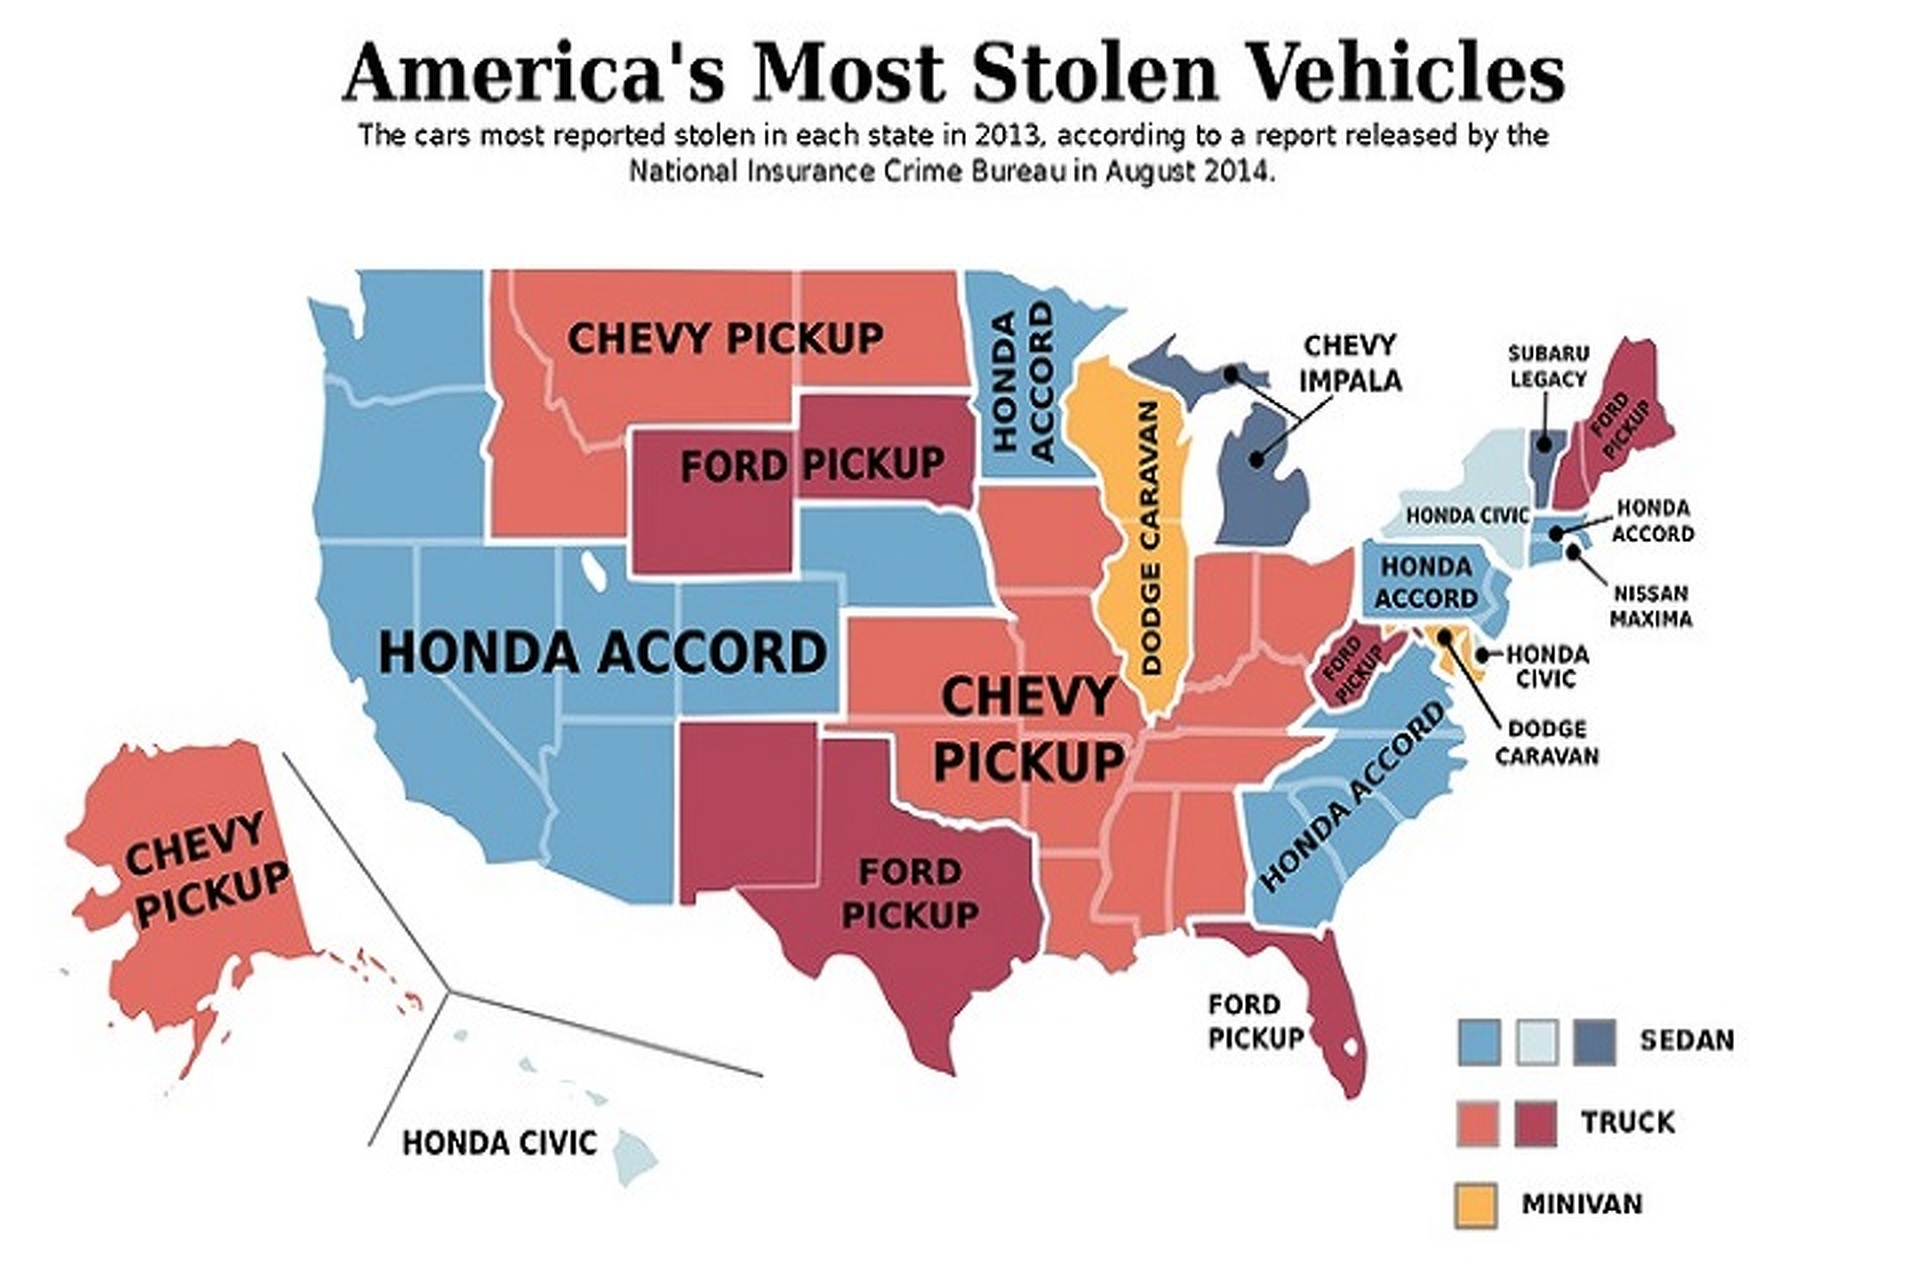 Map Of Most Stolen Cars In The US Might Surprise You - Ford vs chevy us map